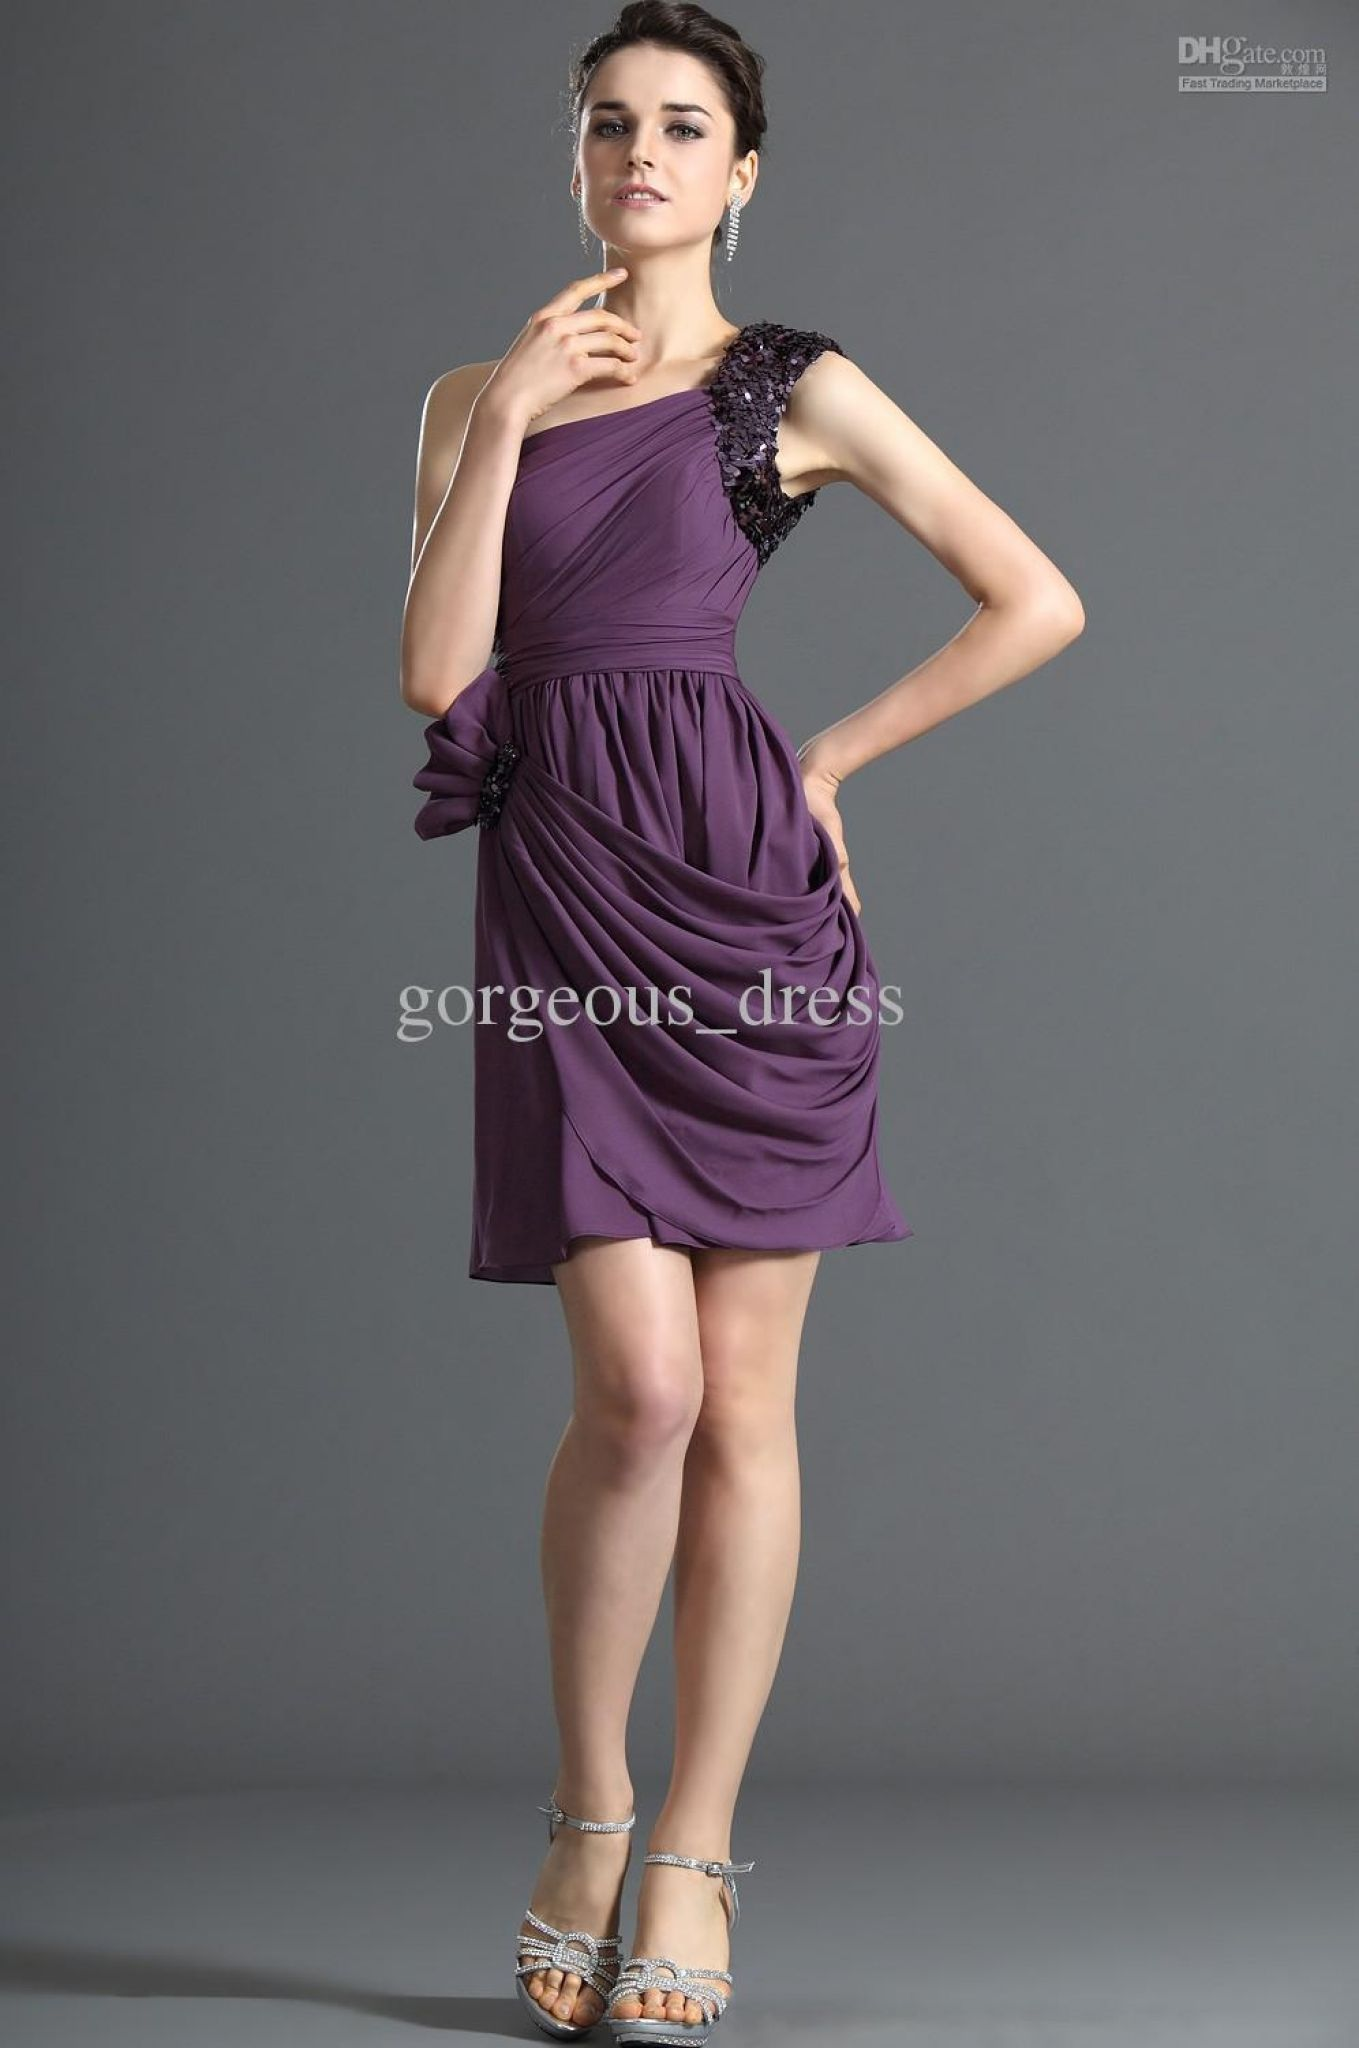 Purple Cocktail Dresses For Weddings   Wedding Dresses For Cheap Check More  At Http:/ Photo